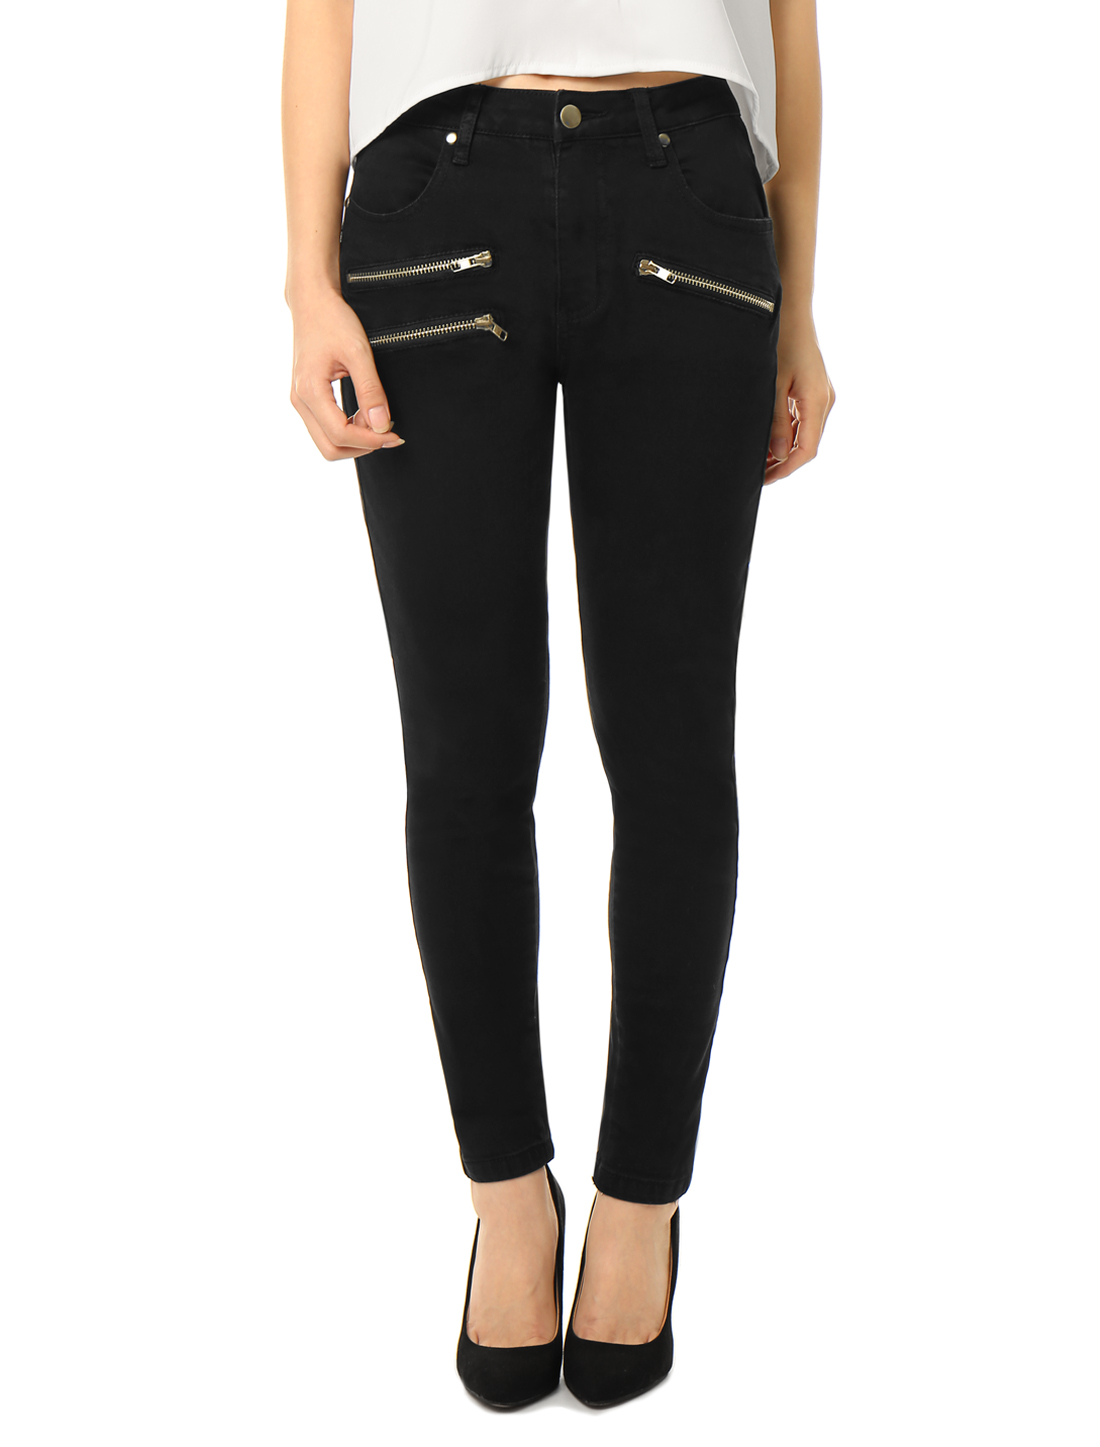 Women Mid Rise Zipper Decor Stretchy Skinny Jeans Black S